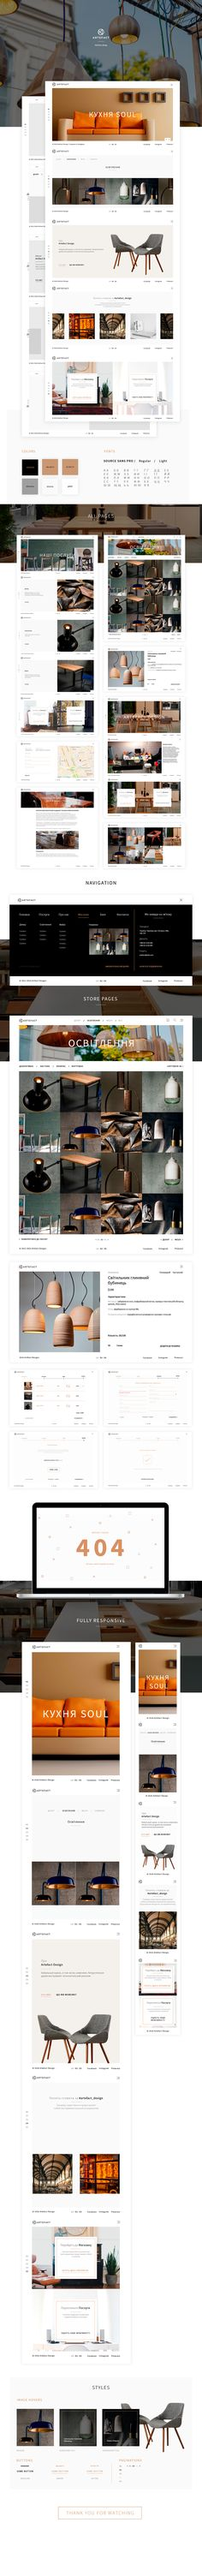 Artefact design - fullpage website, online shop on Behance